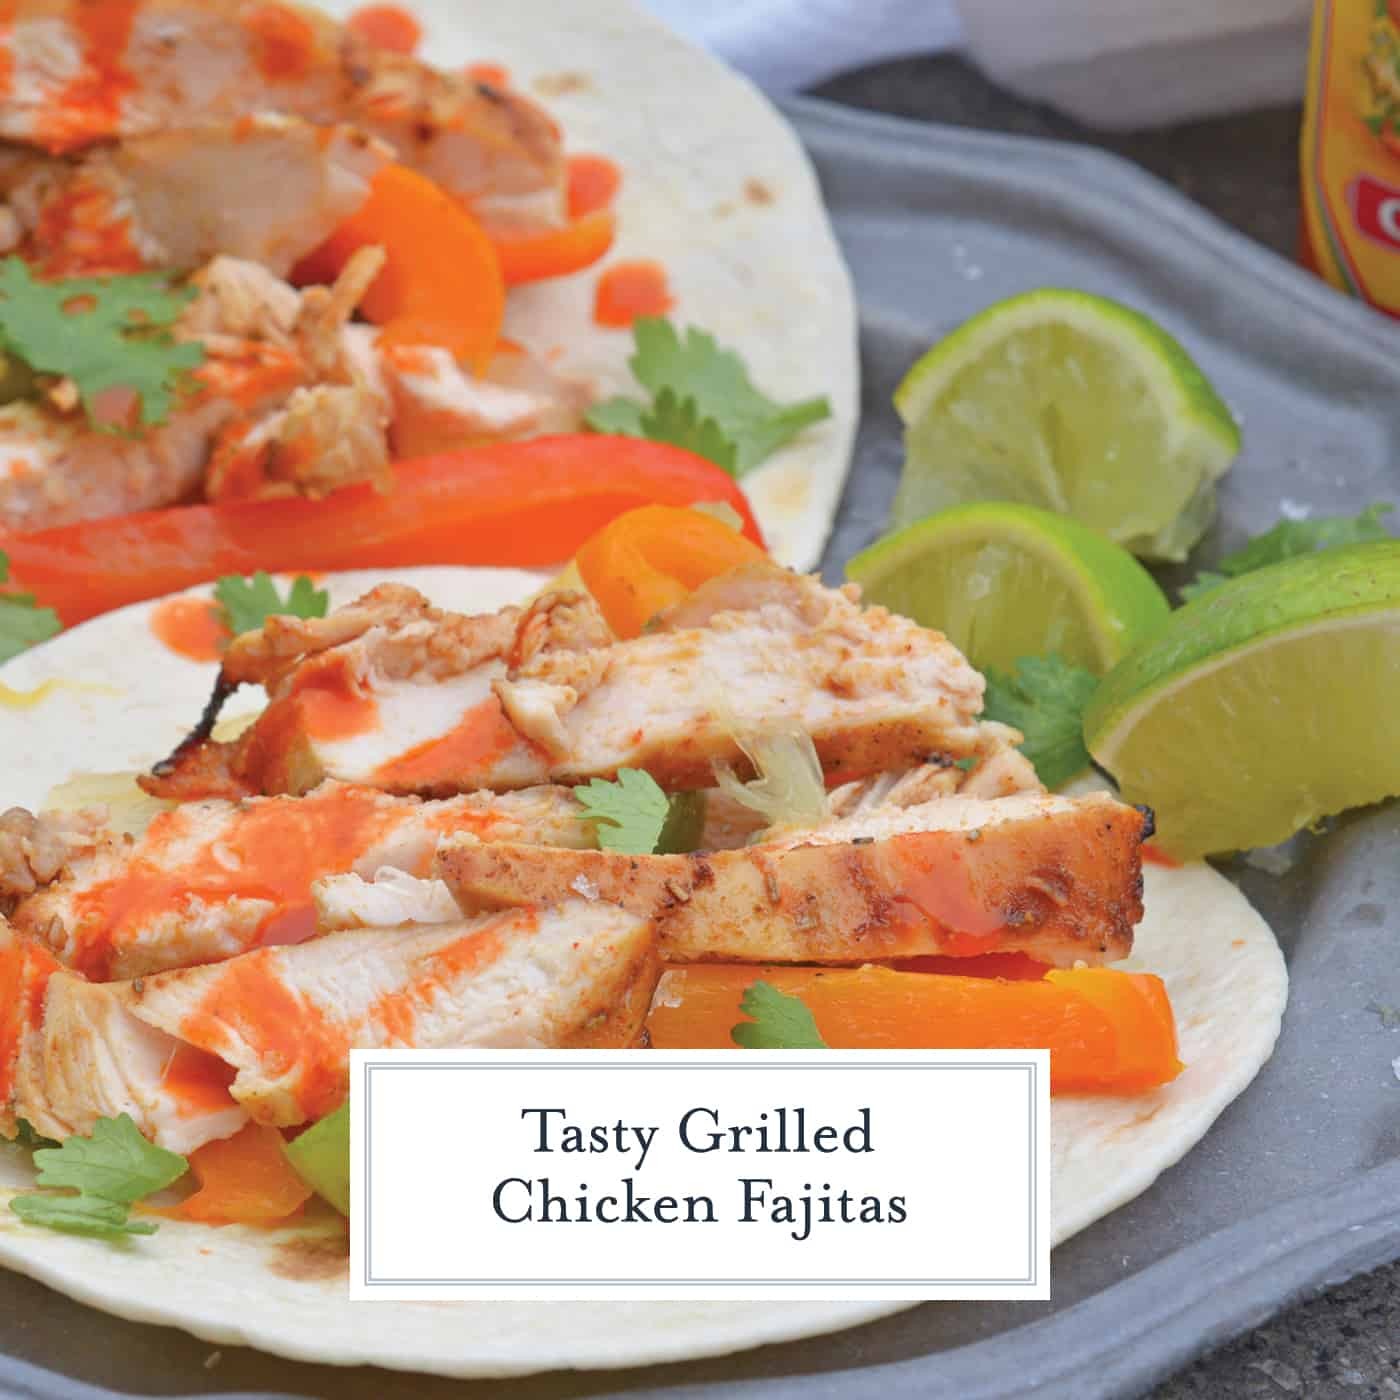 My Grilled Chicken Fajitas are a simple and healthy meal that you can have ready in under 30 minutes and make for the perfect weeknight meal.#grilledchickenfajitas #fajitas #grilledchicken www.savoryexperiments.com